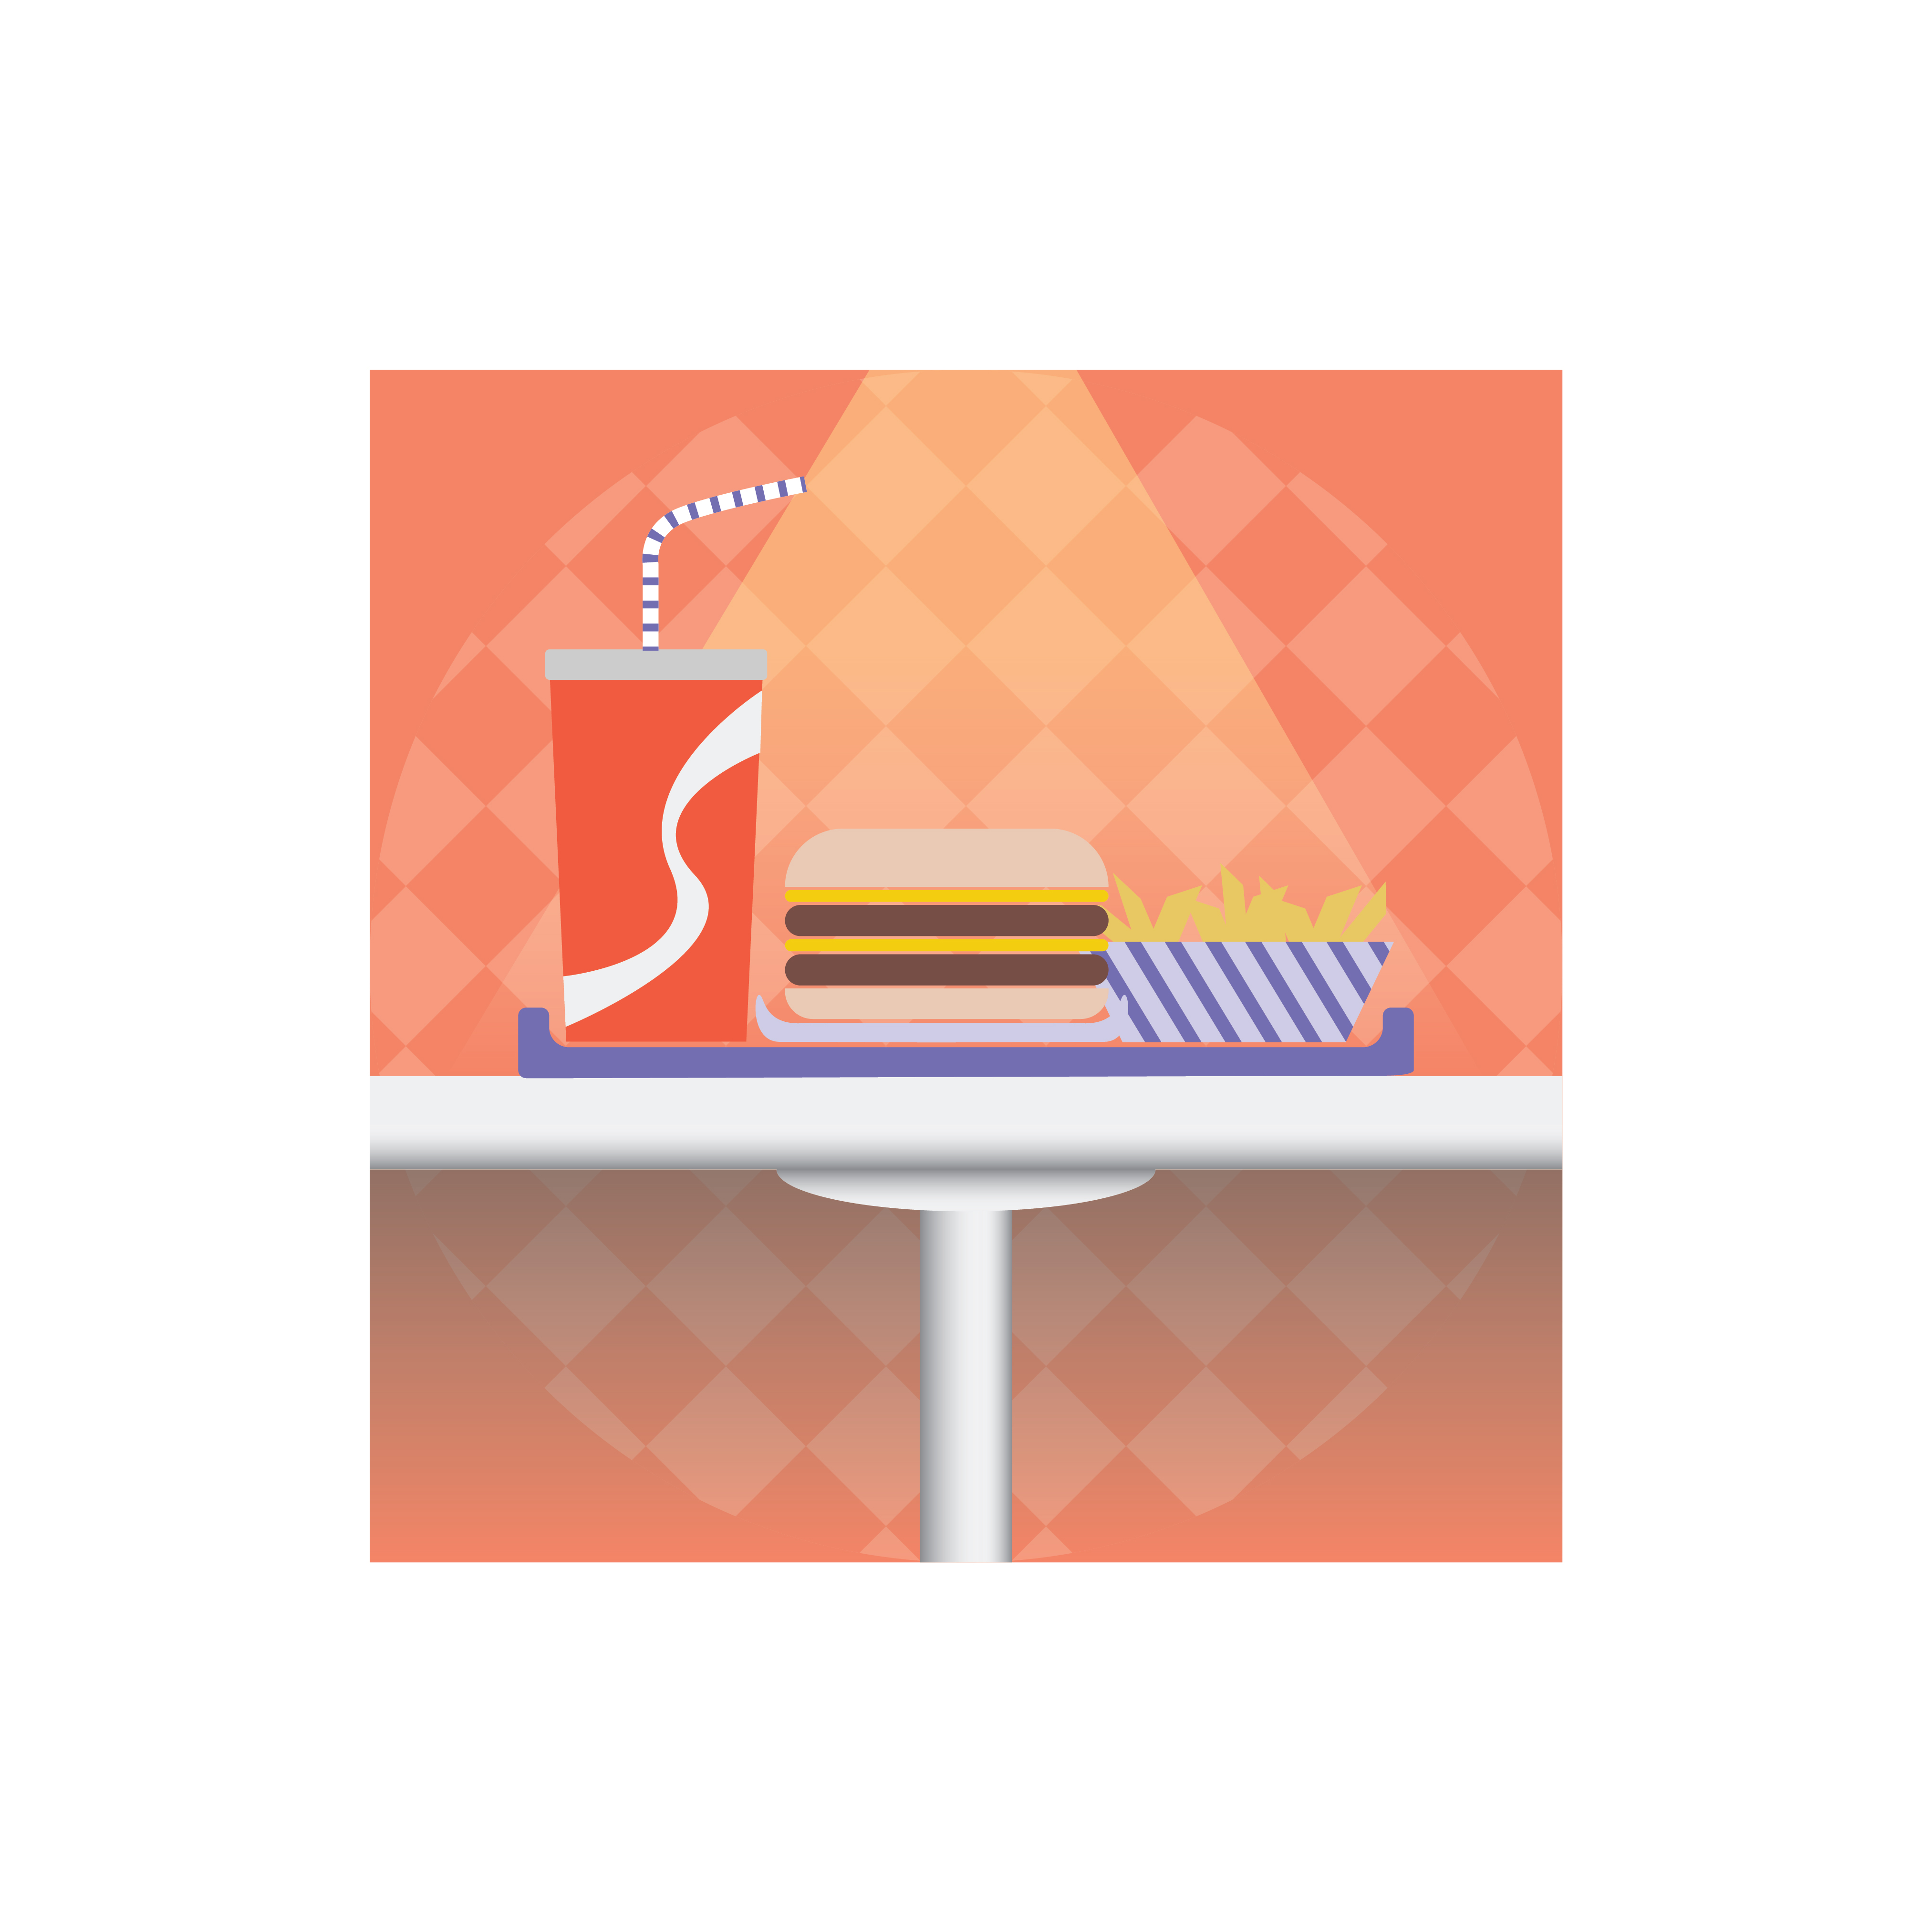 Adobe CC Daily Creative Challenge Illustrator fast food